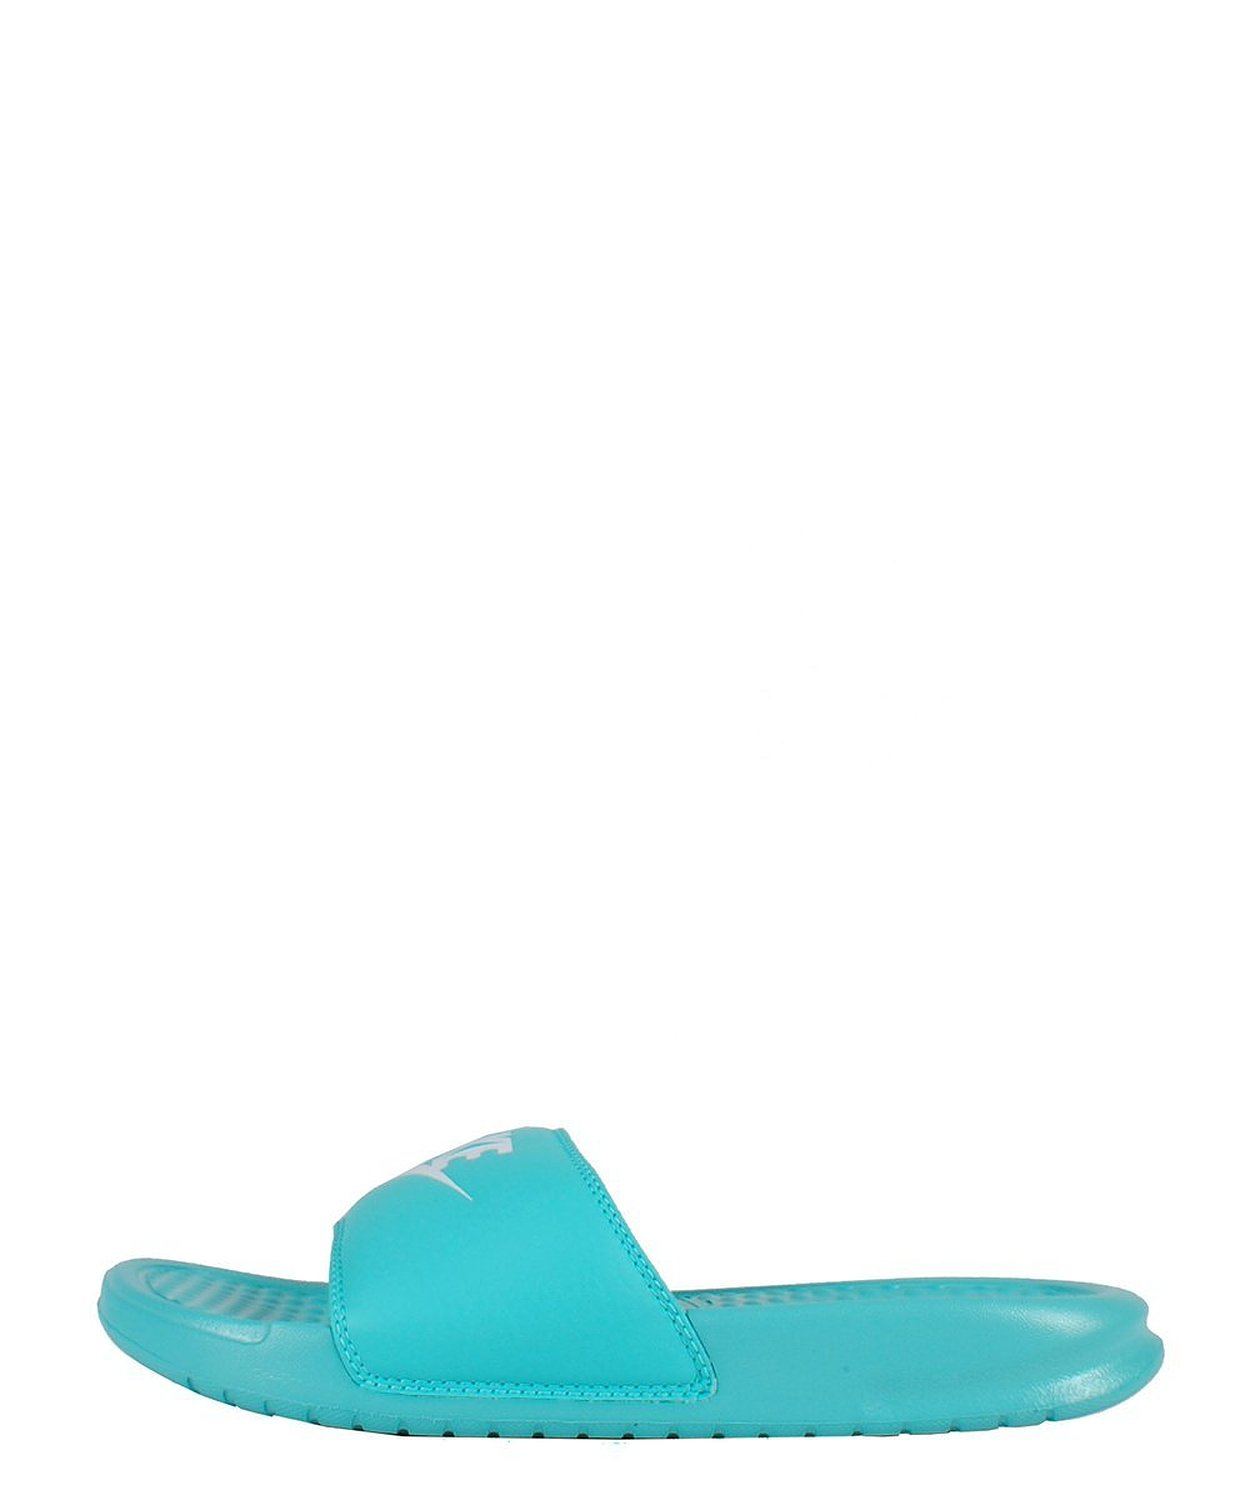 great fit presenting modern and elegant in fashion Nike Womens Benassi Just Do It Sandal (5, HYPER TURQUOISE/WHITE) |  Amazon.com